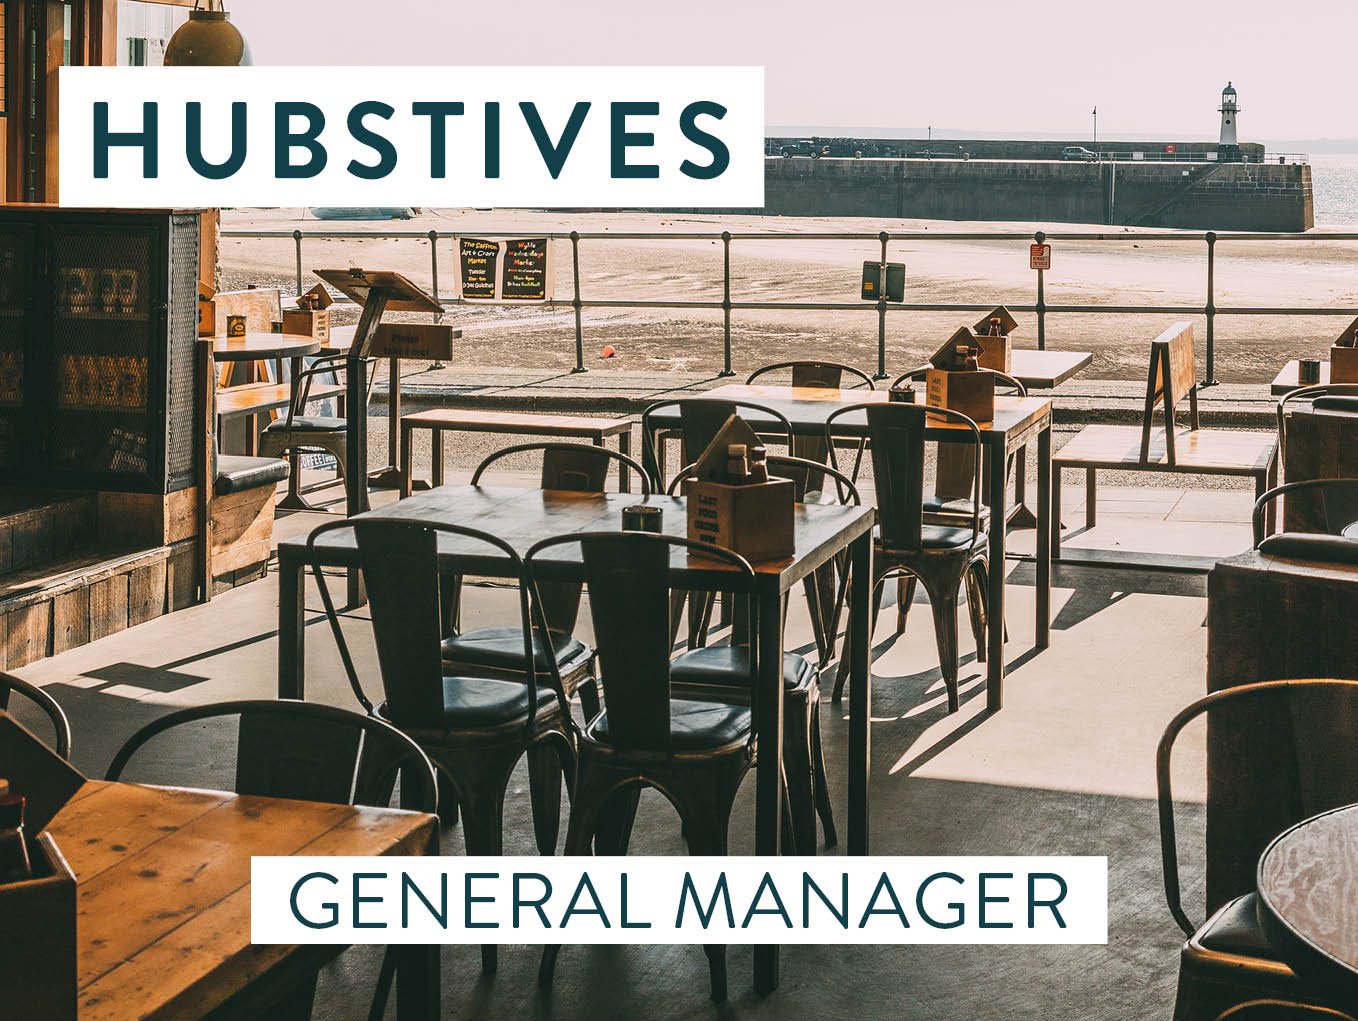 20006 Hub St Ives General Manager Recruitment